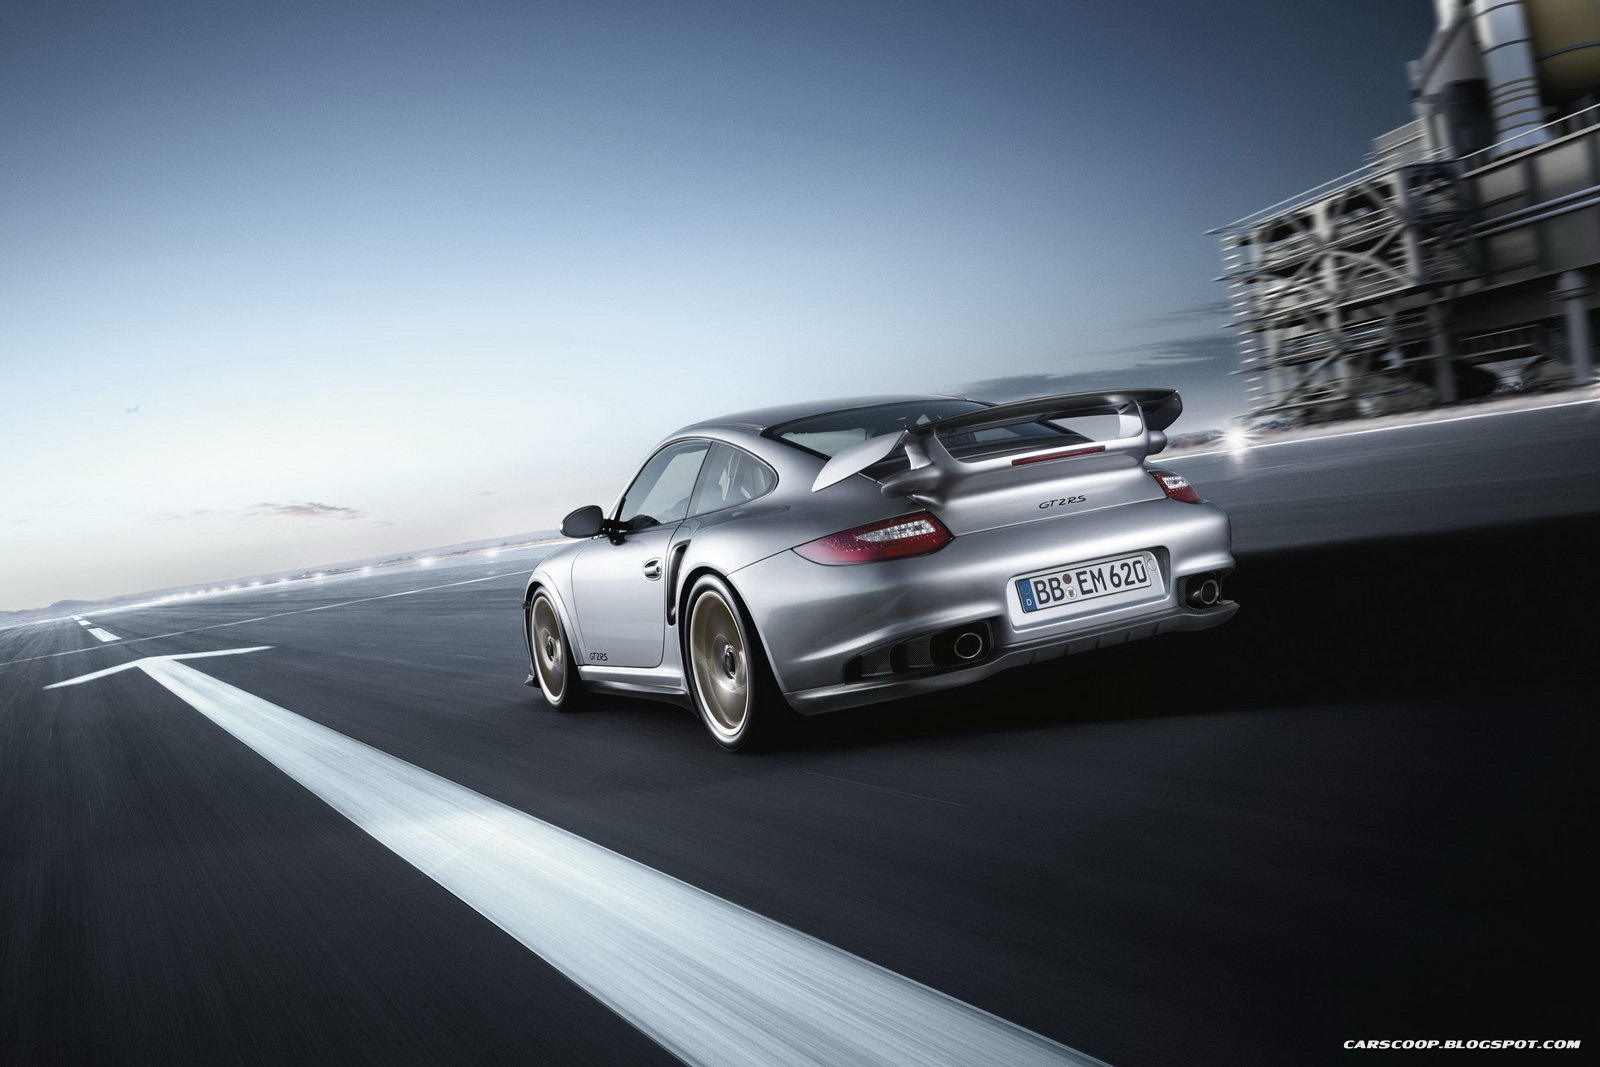 New Porsche 911 Gt2 Rs  Mega Gallery With 71 Photos  Plus